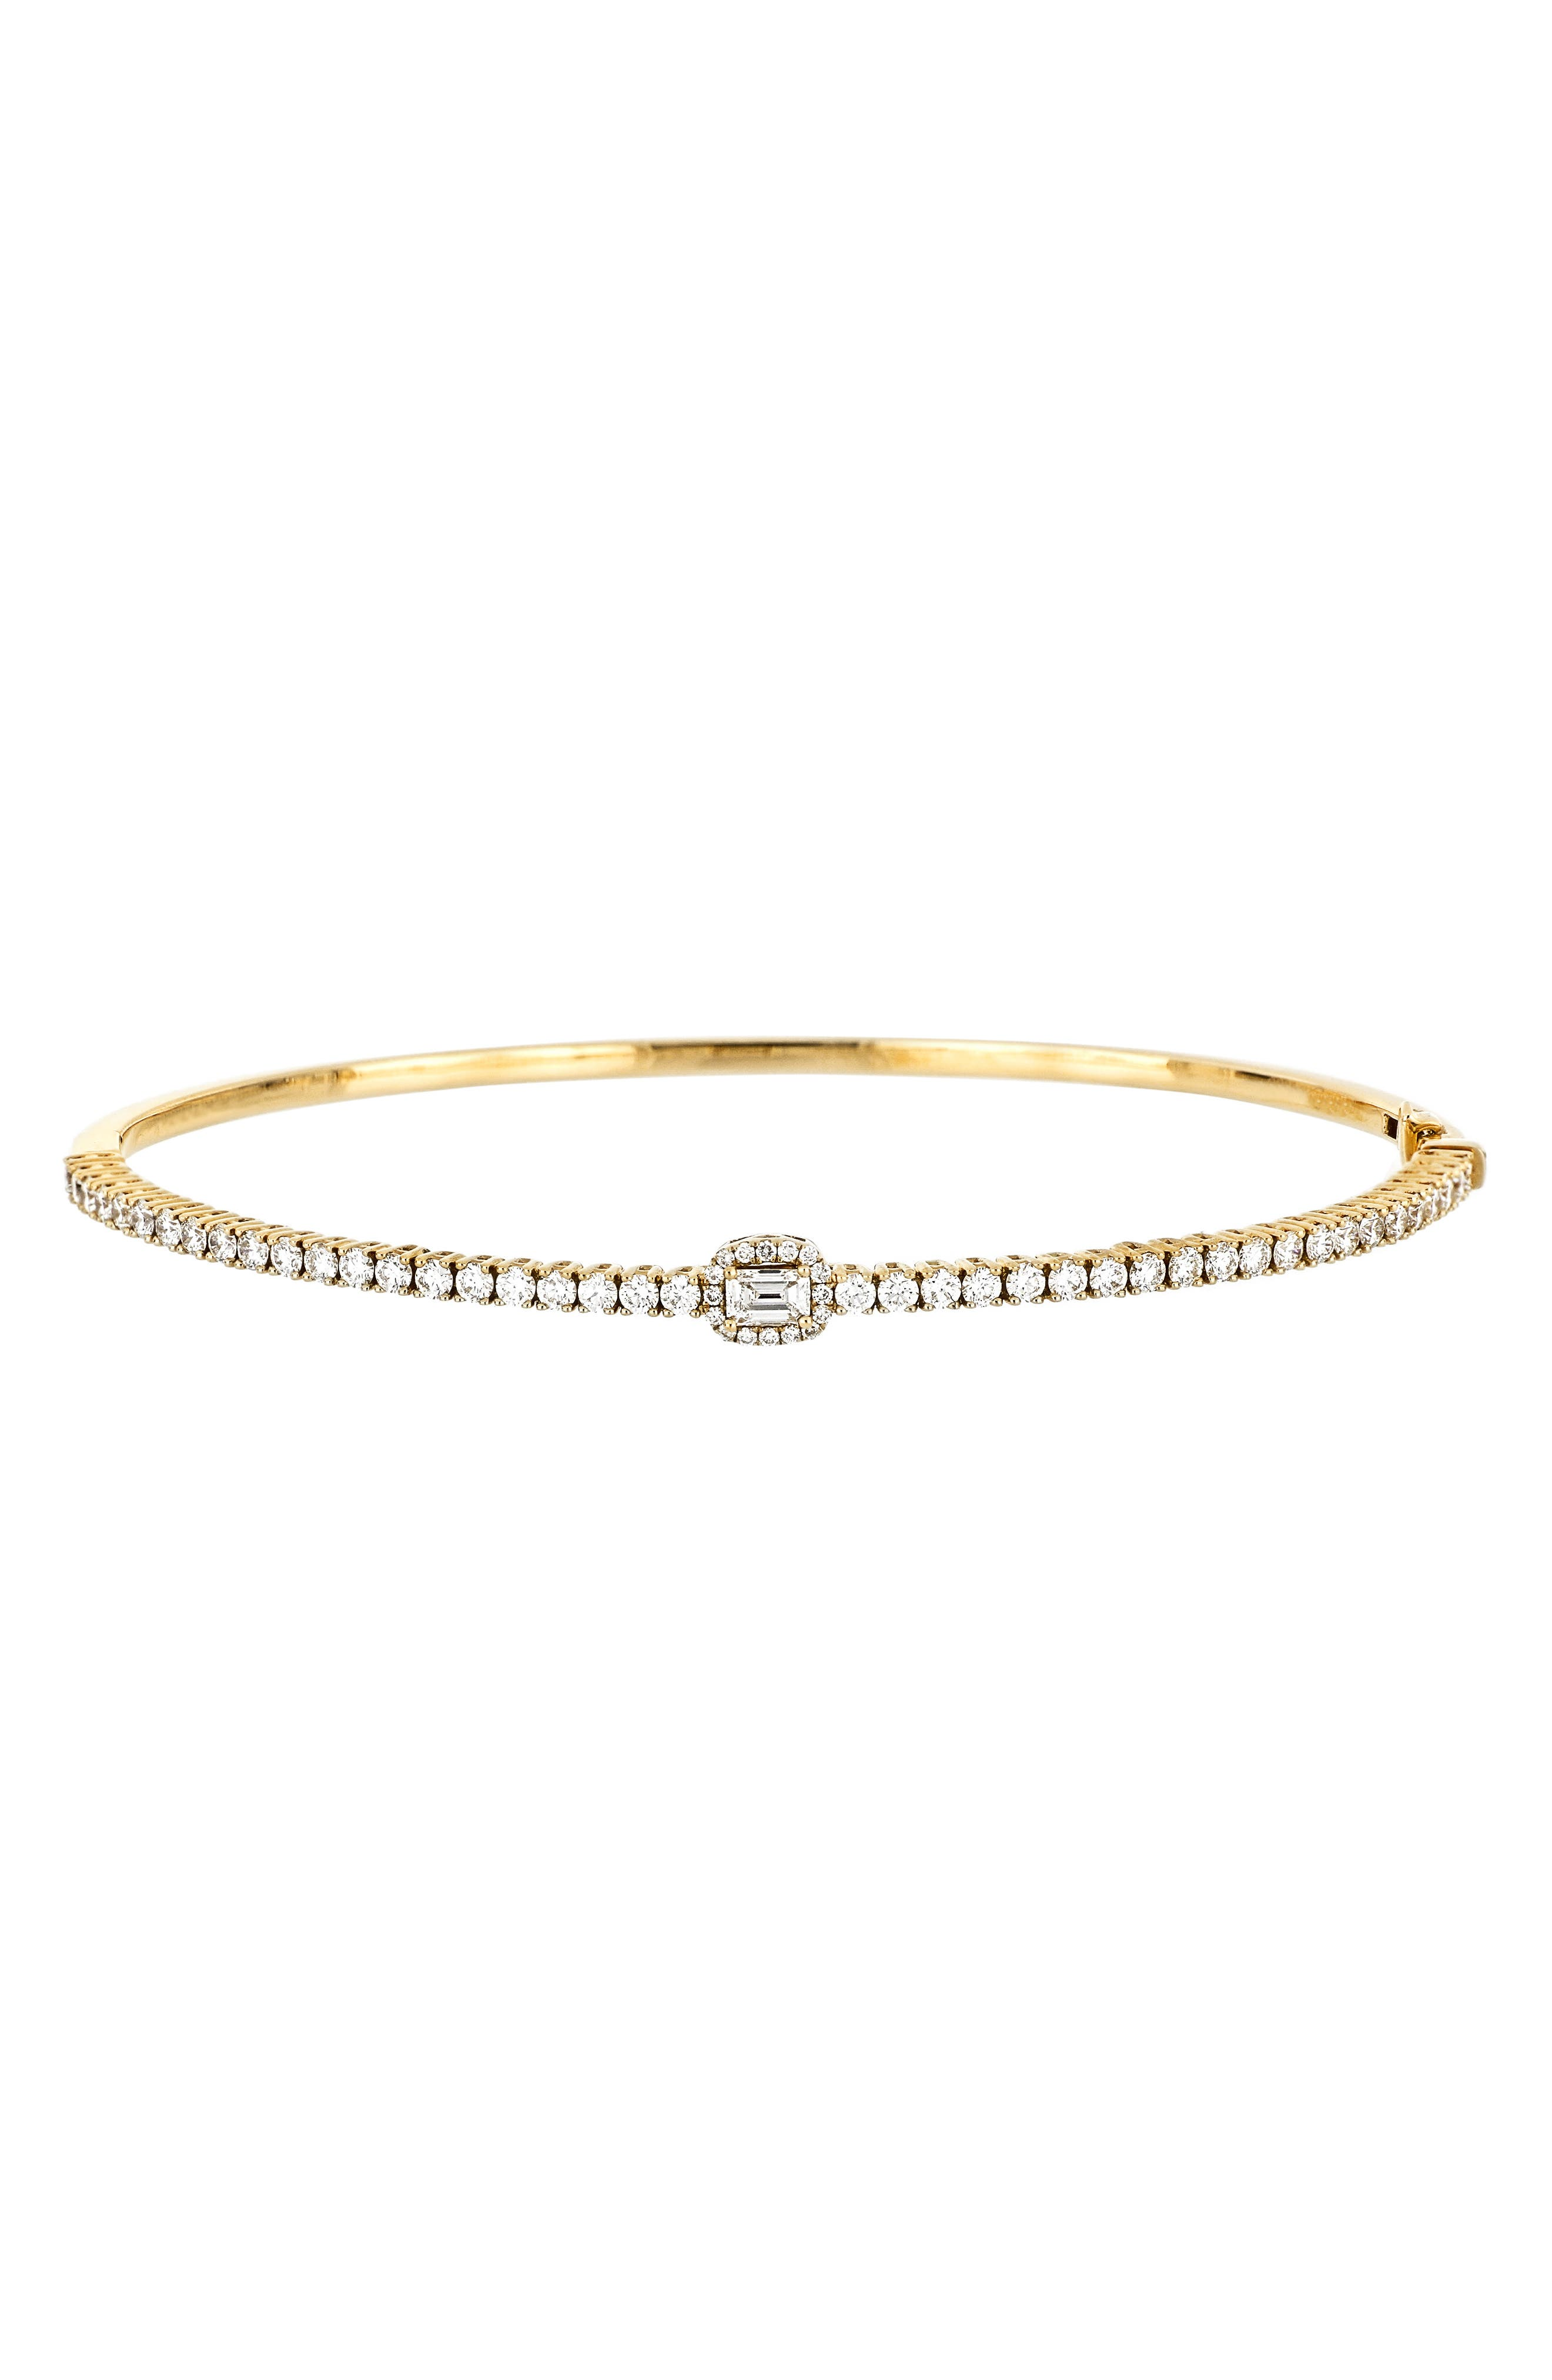 Part of our Bony Levy Trunk Show, this Nordstrom-exclusive style is available for a limited time through August 30, online only.A haloed baguette diamond sparkling at the center of a pave line furthers the deco aesthetic of this versatile, stackable bangle handcrafted in 18-karat gold. Style Name: Bony Levy Gatsby Stackable Bangle (Trunk Show Exclusive). Style Number: 6108904. Available in stores.